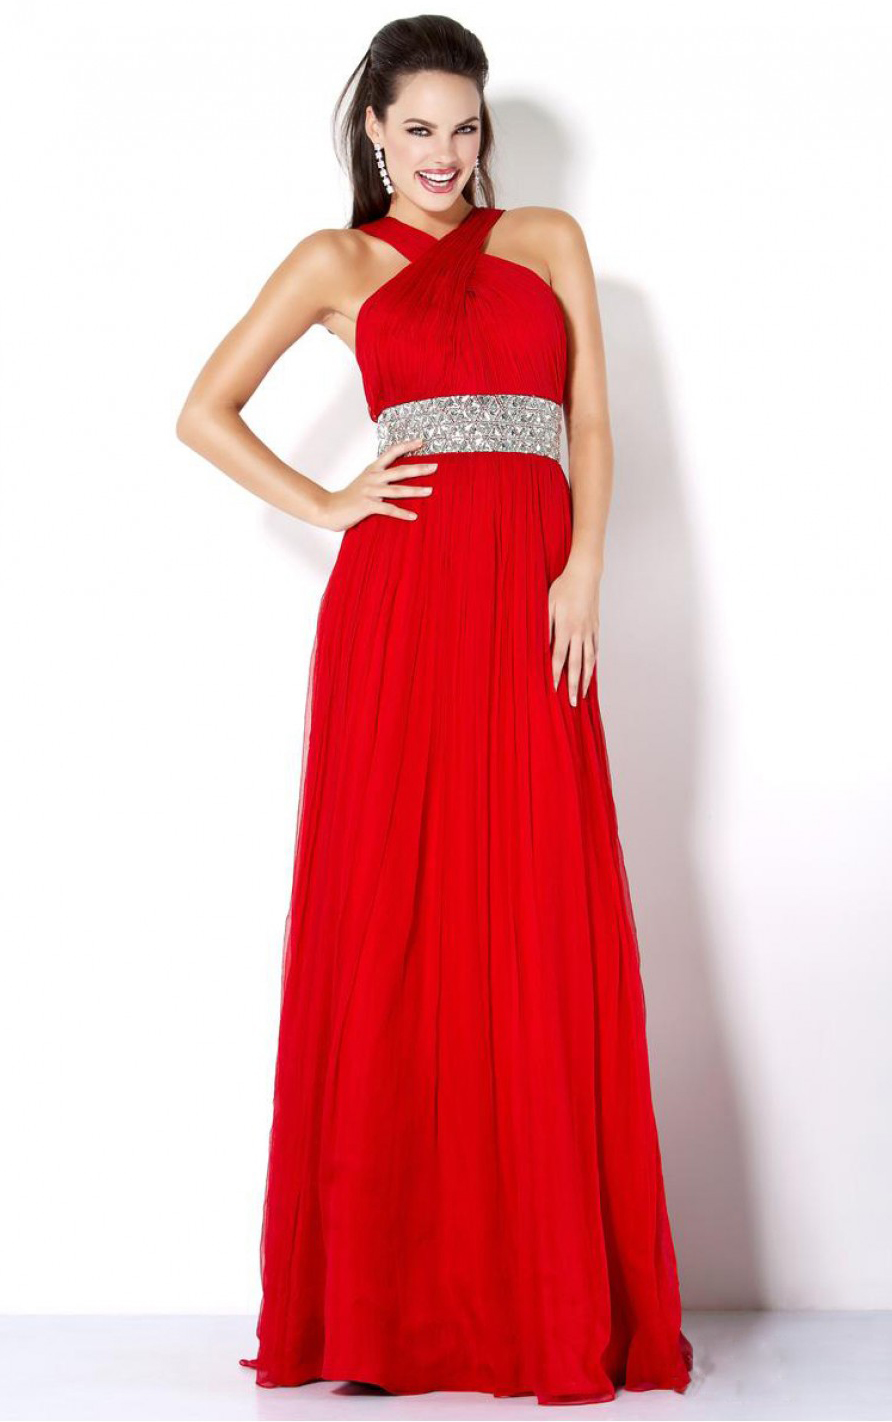 Chiffon Empire A-line Floor-length Halter Red Perom Dress with Crystal Band